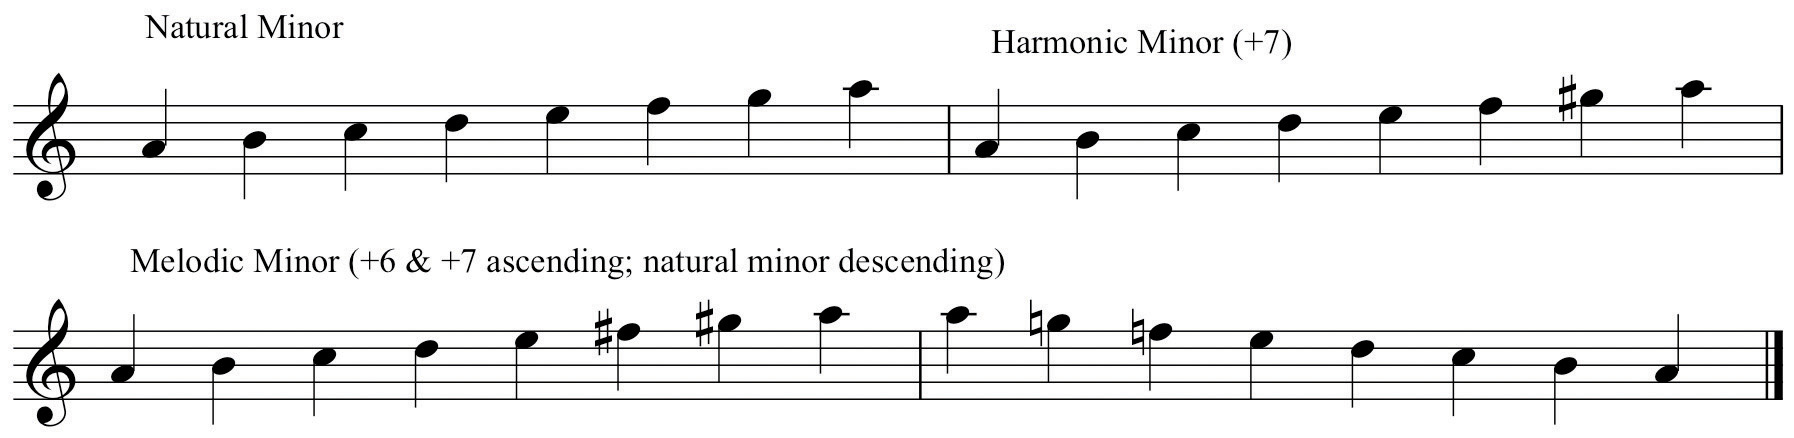 Melodic Minor Scales Trumpet And Melodic Minor Scales